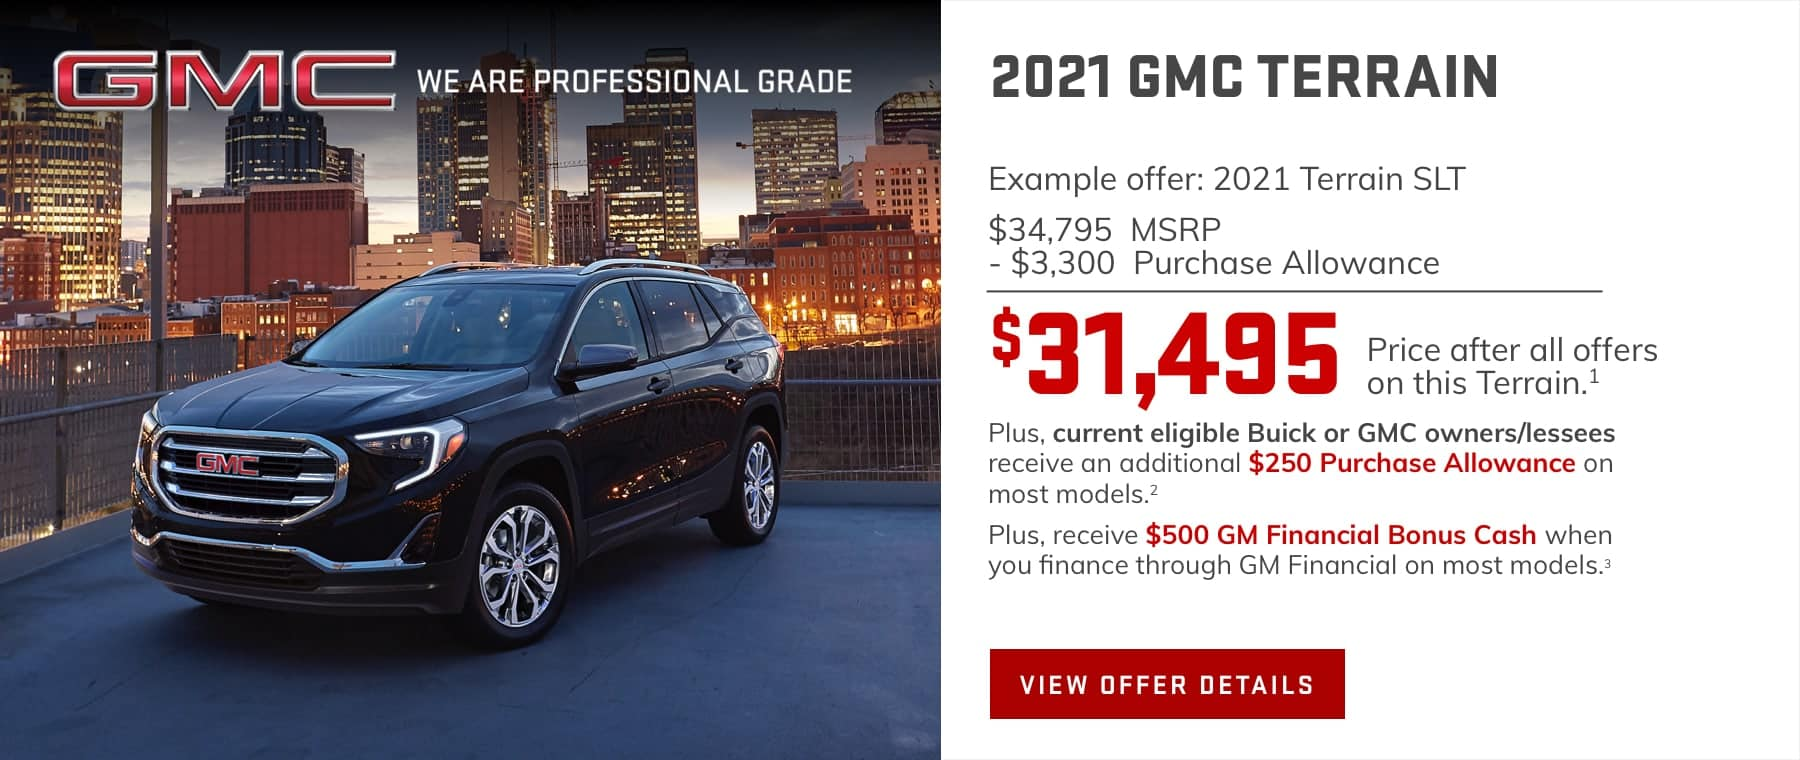 Example offer: 2021 Terrain SLT $34,795 MSRP -$3,300 Purchase Allowance $31,495 Price after all offers on this Terrain.1 Plus, current eligible Buick or GMC owners/lessees receive an additional $250 Purchase Allowance on most models.2 Plus, receive $500 GM Financial Bonus Cash when you finance through GM Financial on most models.3